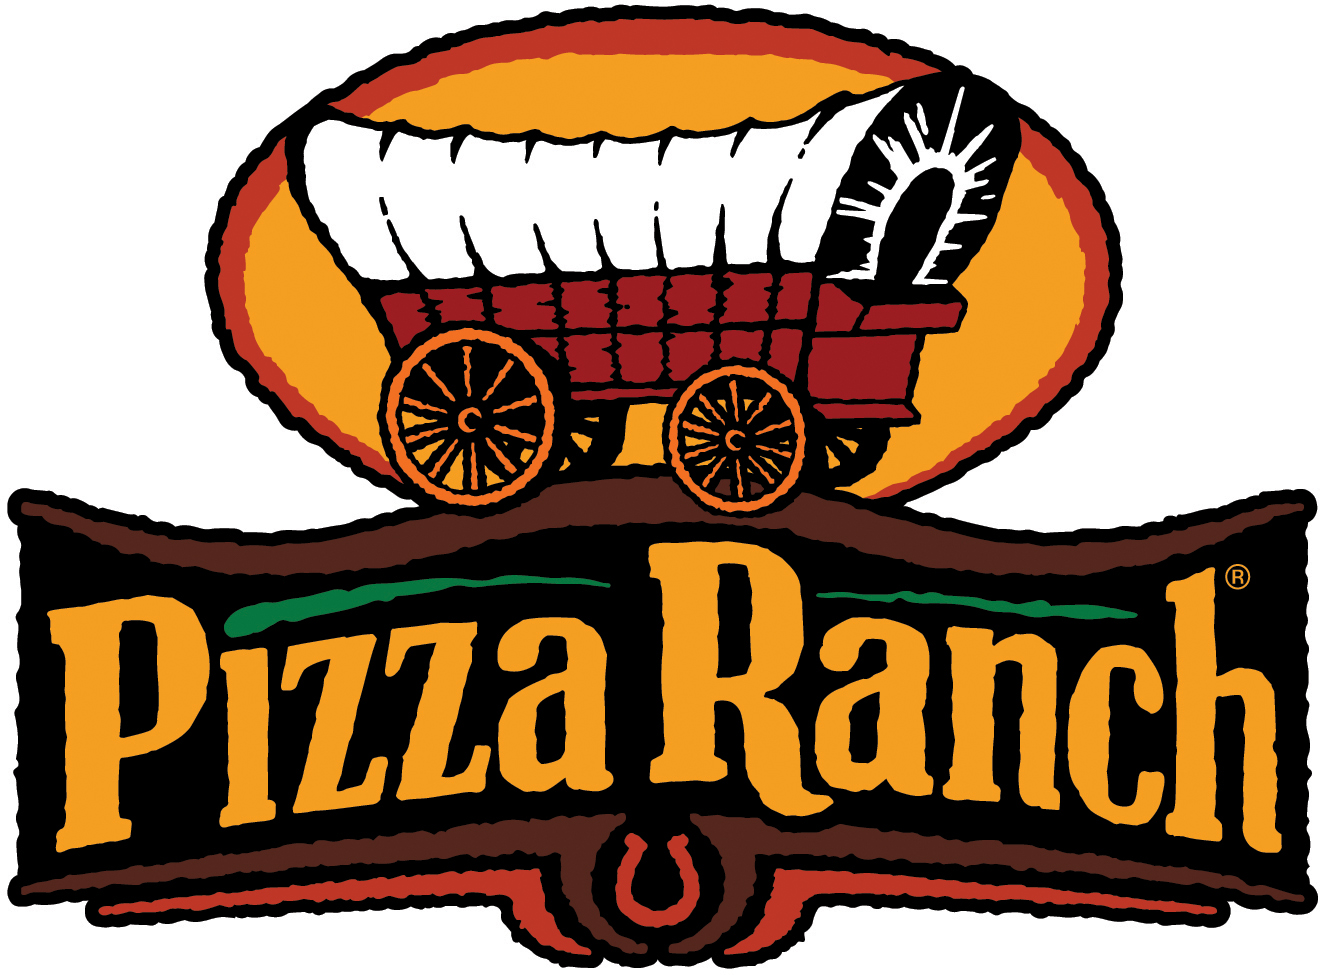 Image result for pizza ranch logo